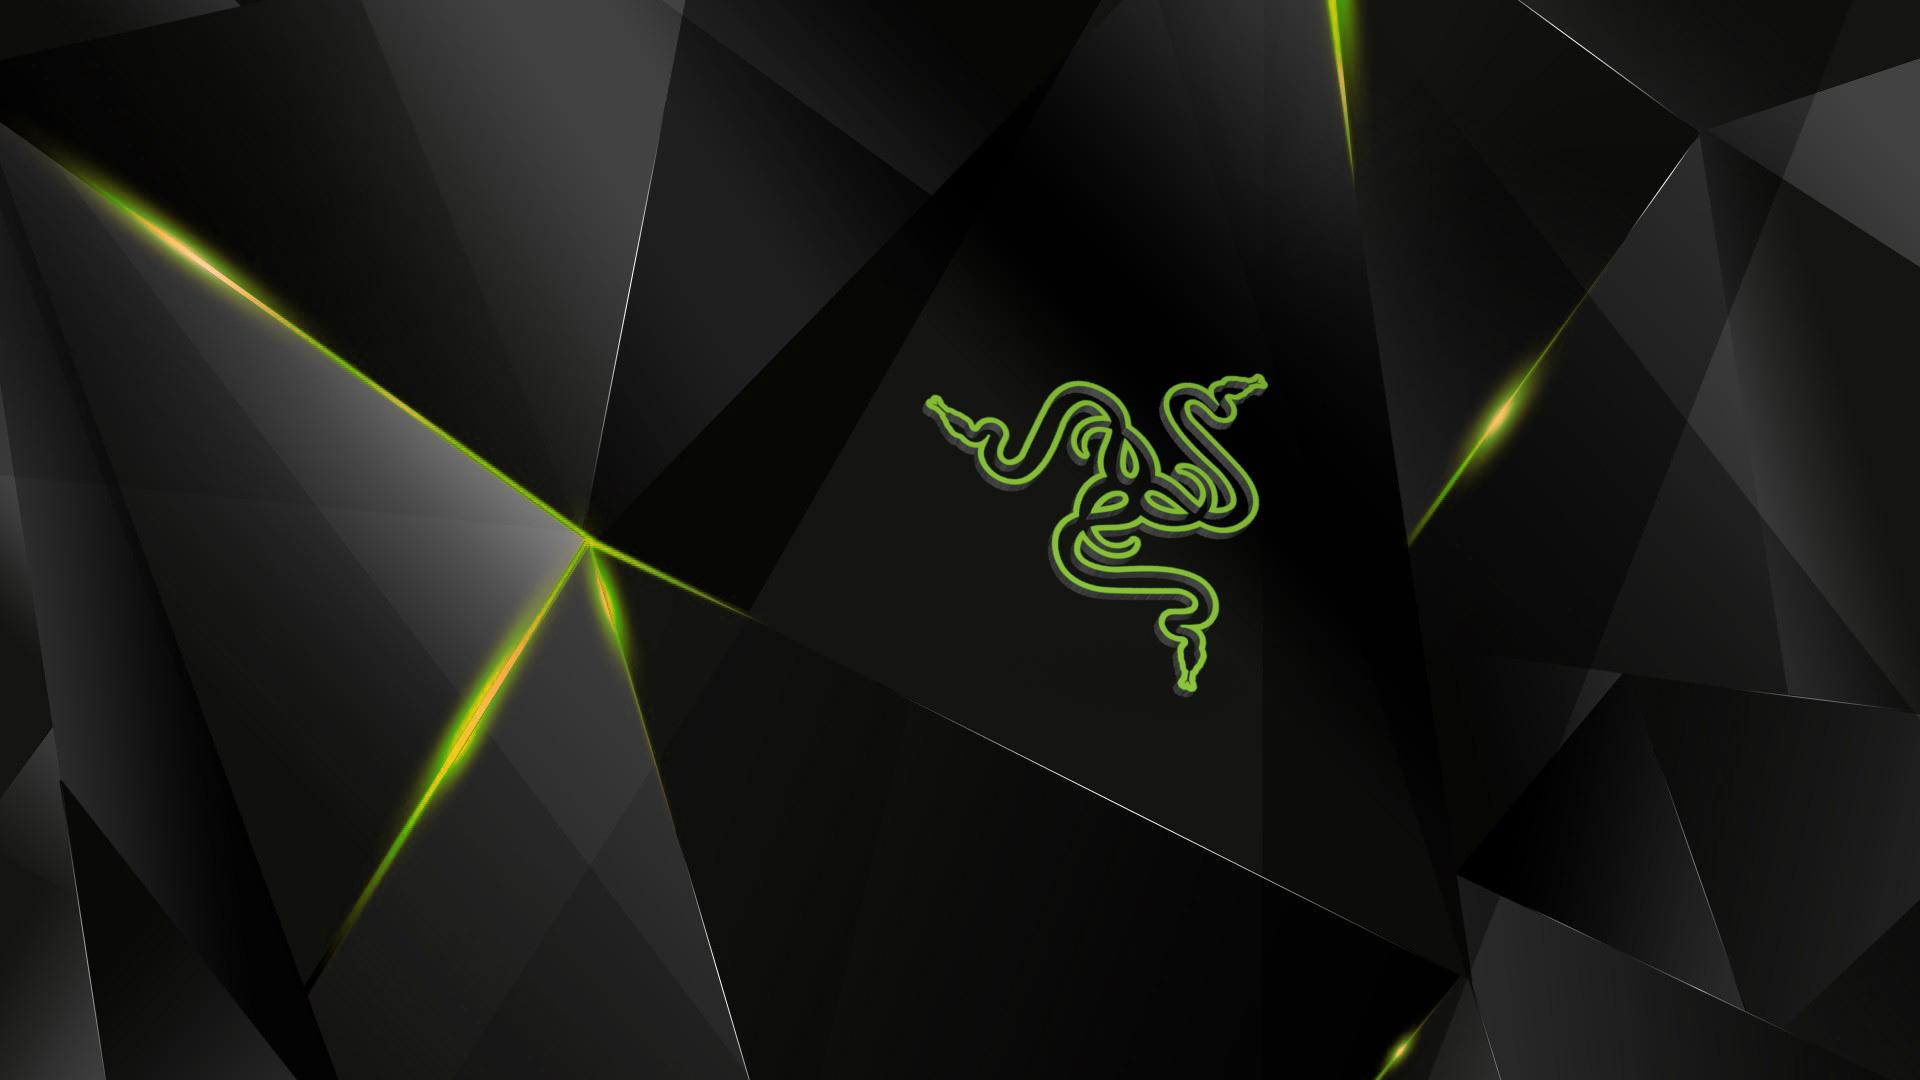 RAZER (Audio headsets for gaming, Keyboards, Mice, Mouse Pads)